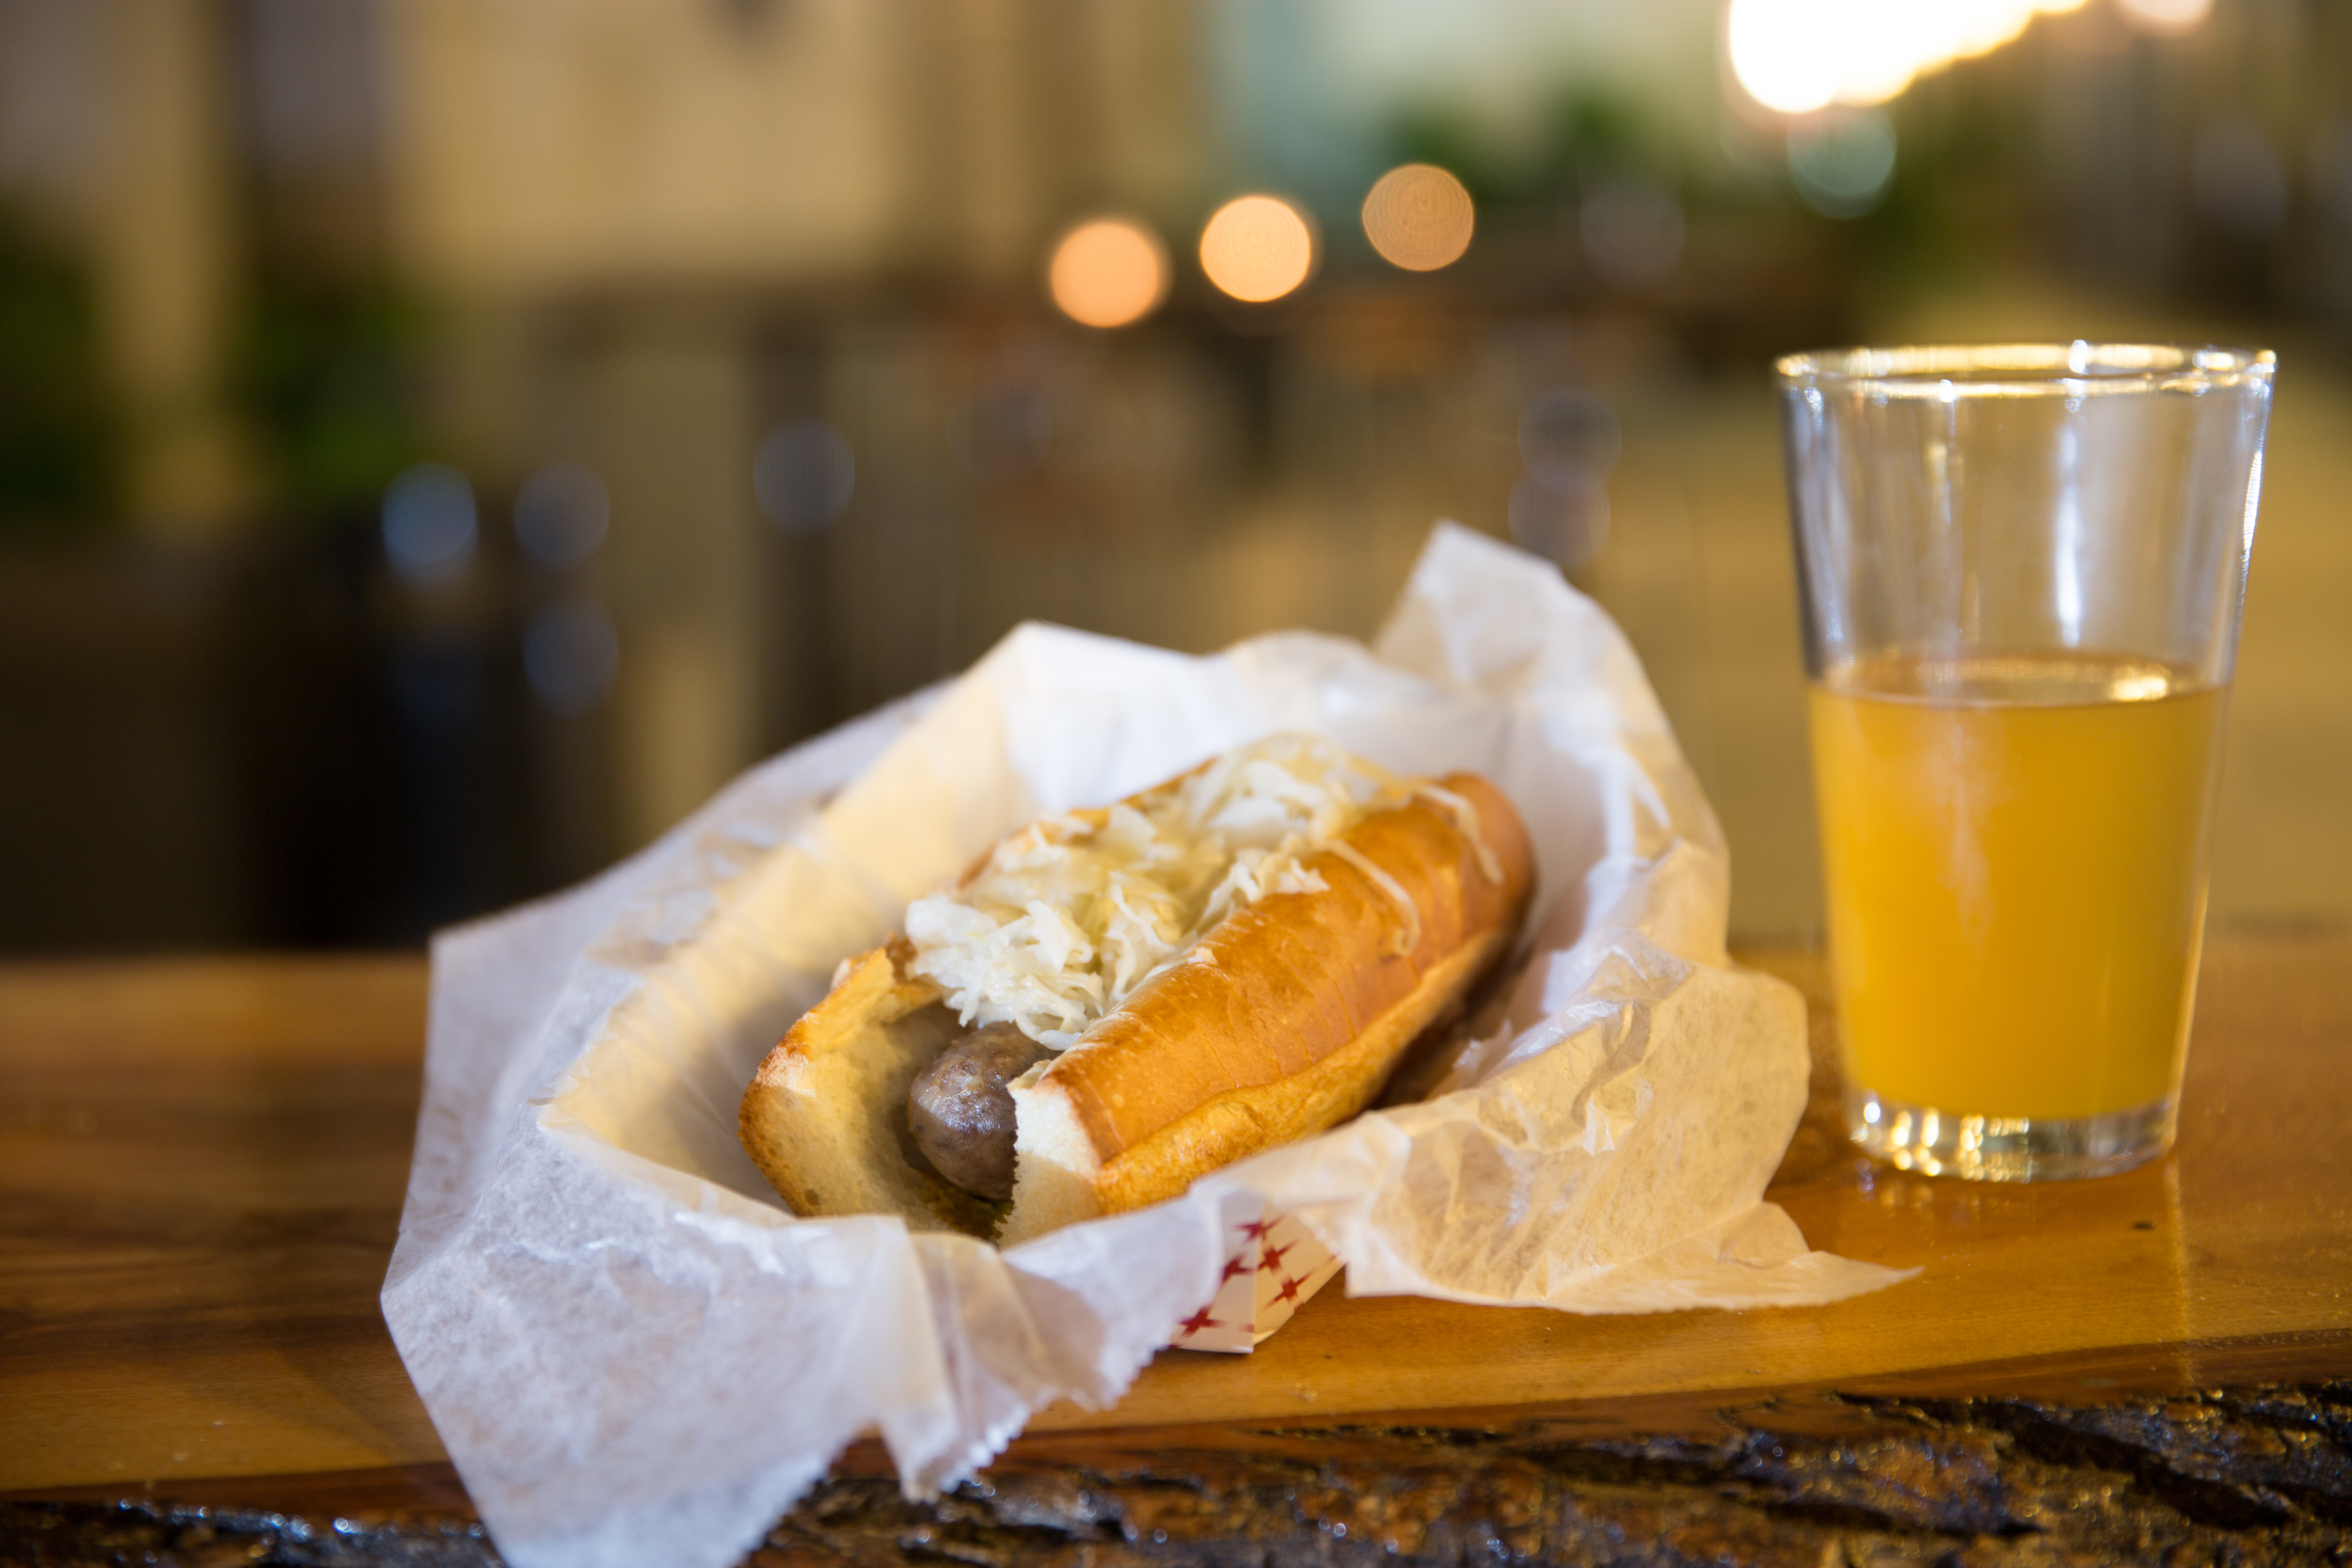 Wurst and craft beer at Uptown Beer Garden.jpg